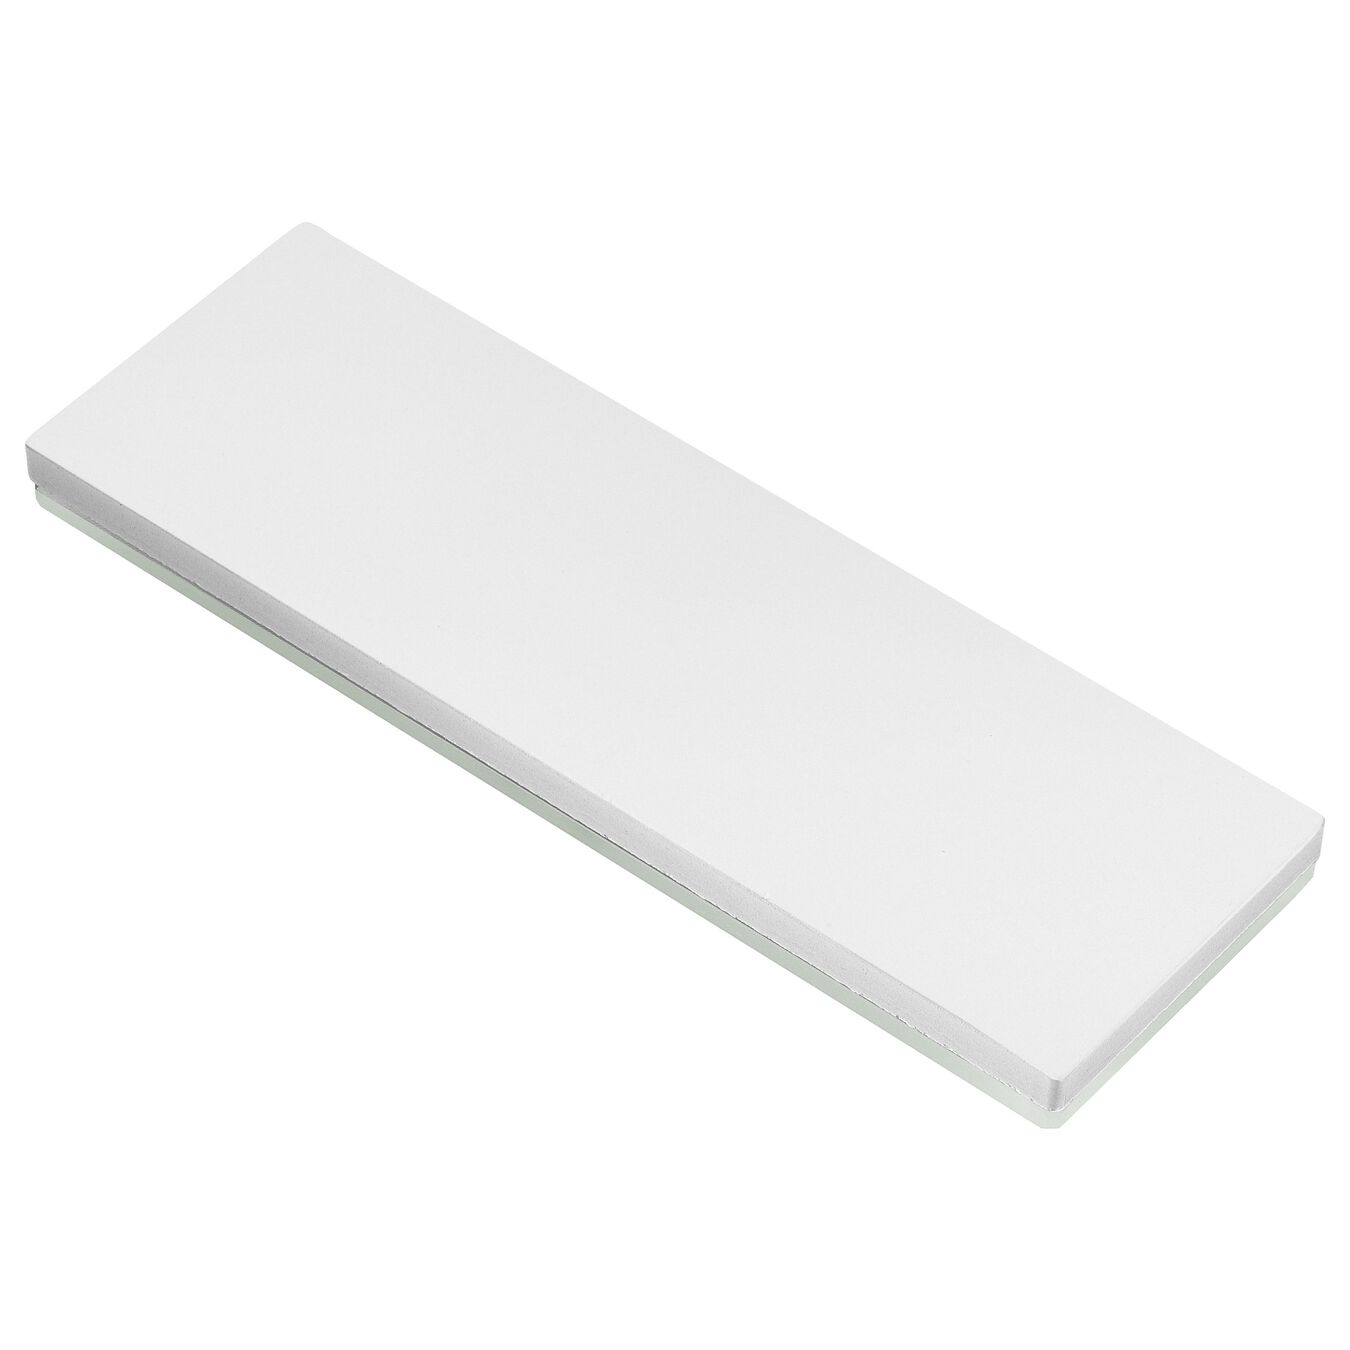 10000 Grit Glass Water Sharpening Stone,,large 1